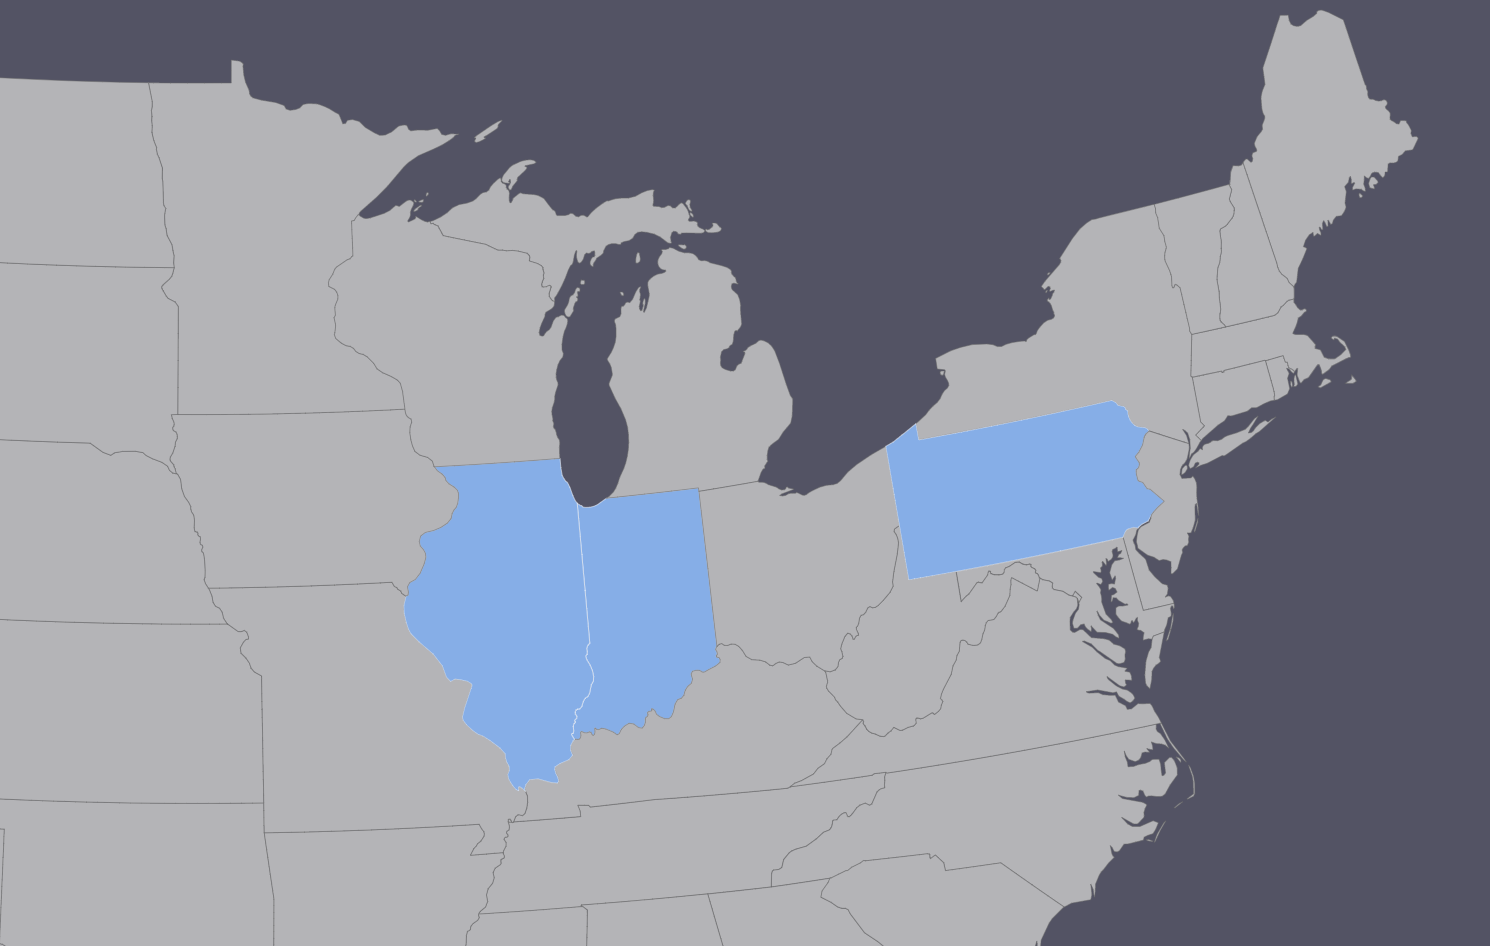 A map of the USA highlighting only Illinois and Indiana, which are adjacent states, but also Pennsylvania.  https://www.amcharts.com/visited_states/#US-IL,US-IN,US-PA